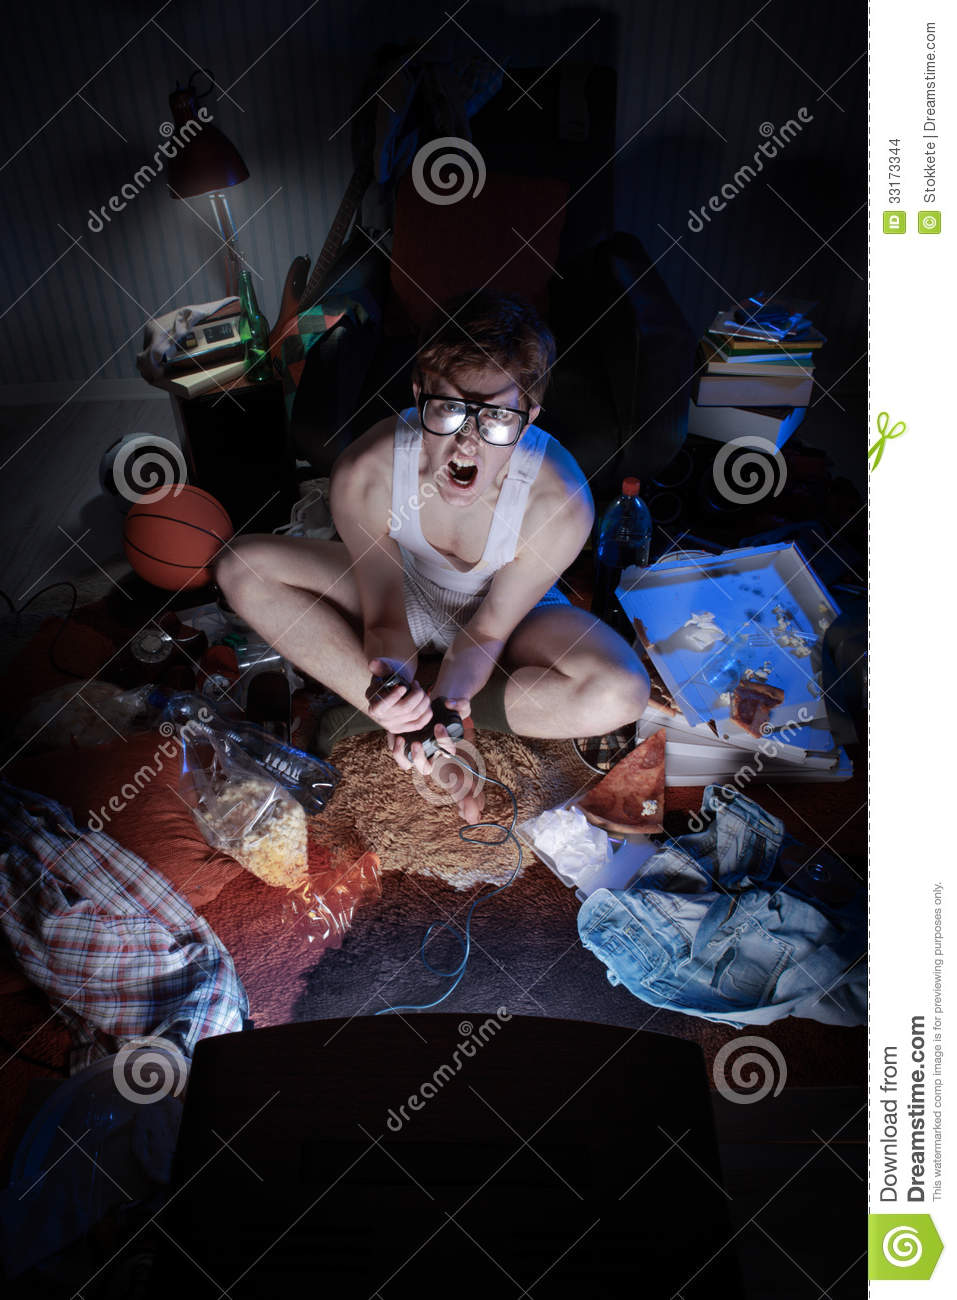 Gamer Nerd Playing Video Games On Television Stock Images